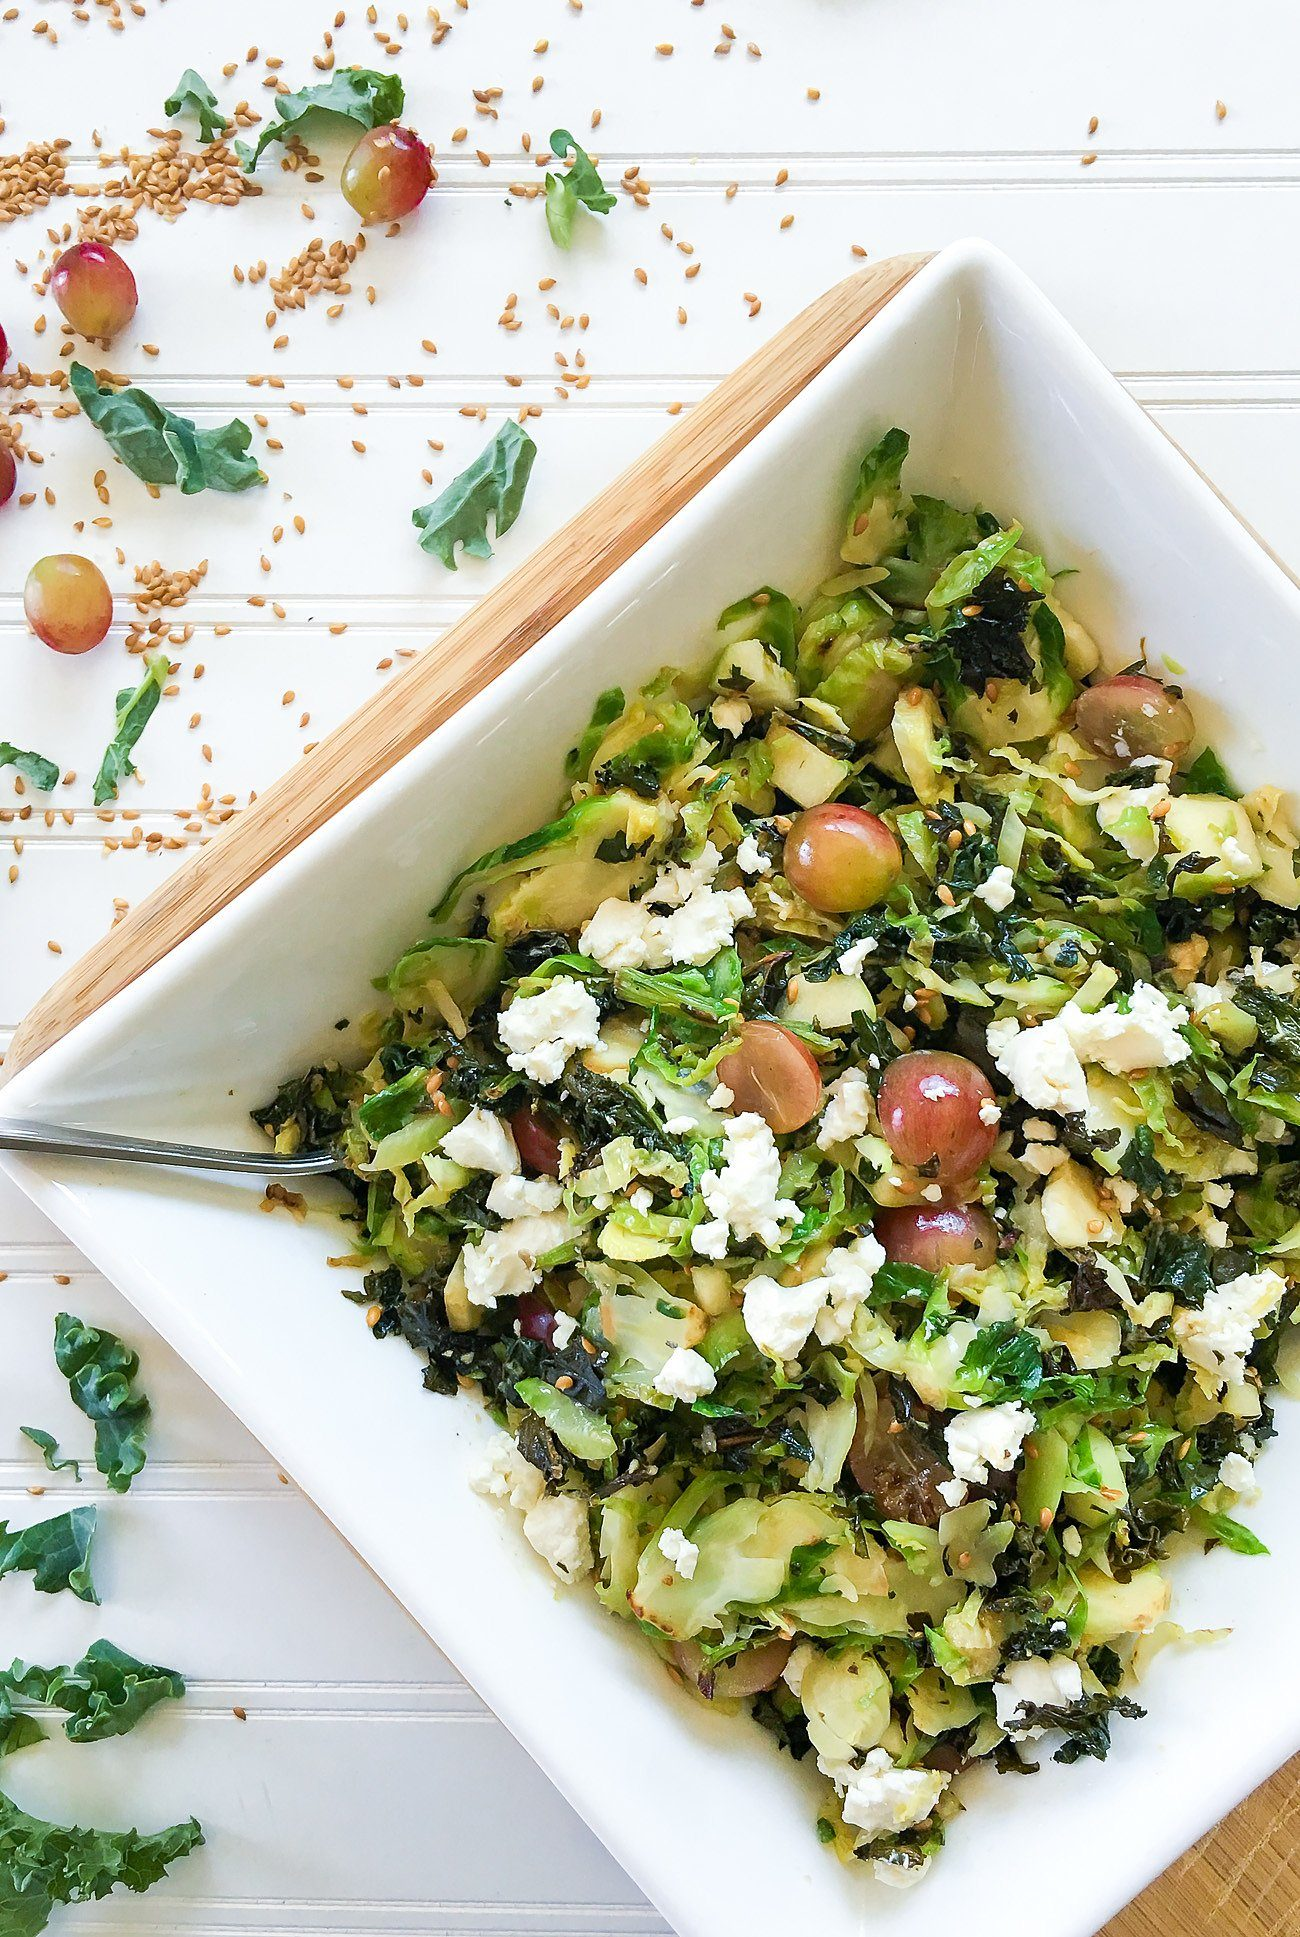 Recipe: Warm Superfood Salad with Kale, Brussels Sprouts, Honey Goat Cheese, Grapes